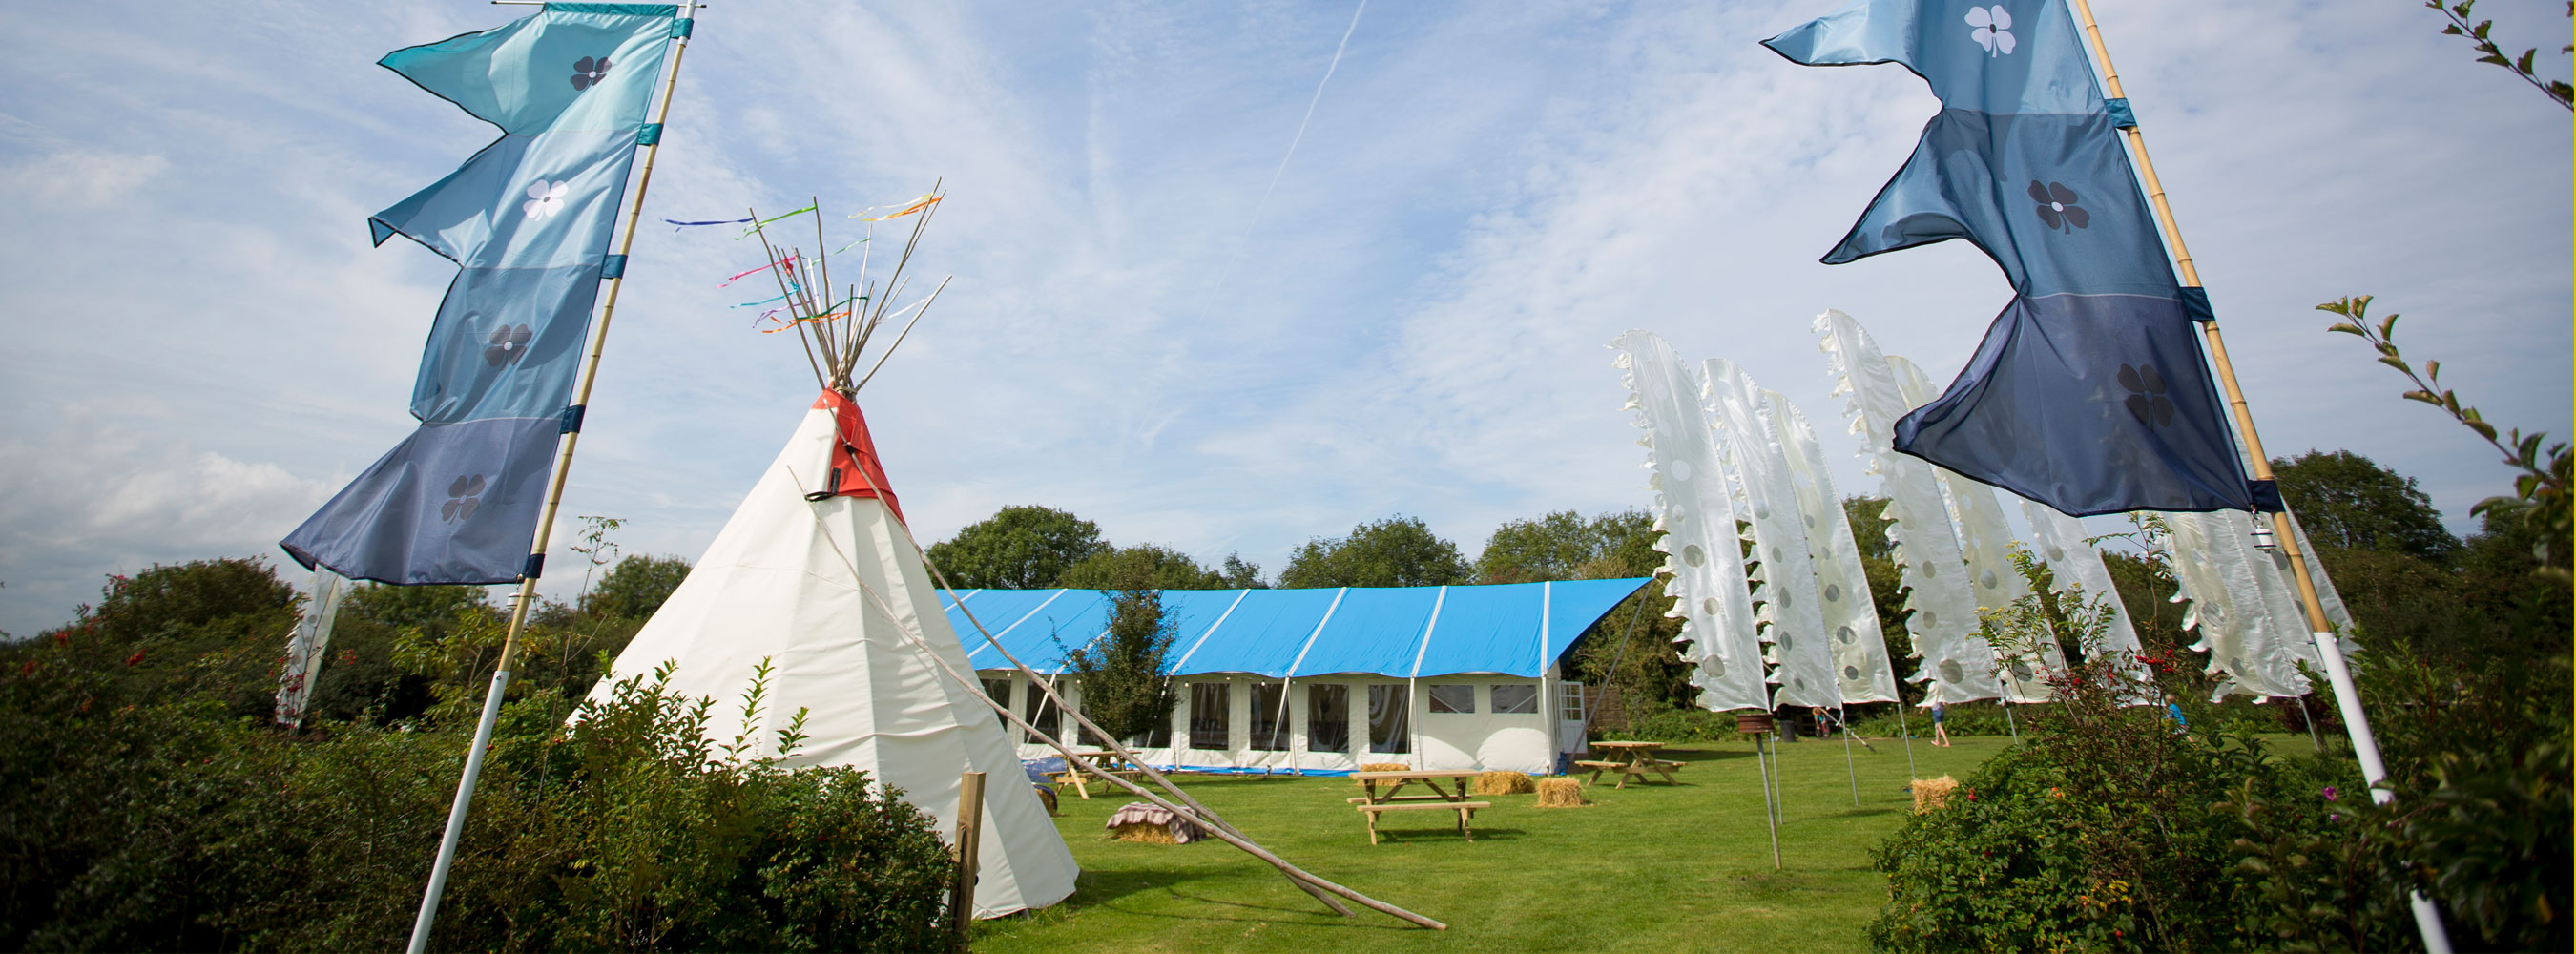 Marquee Meadow festival flags tipi